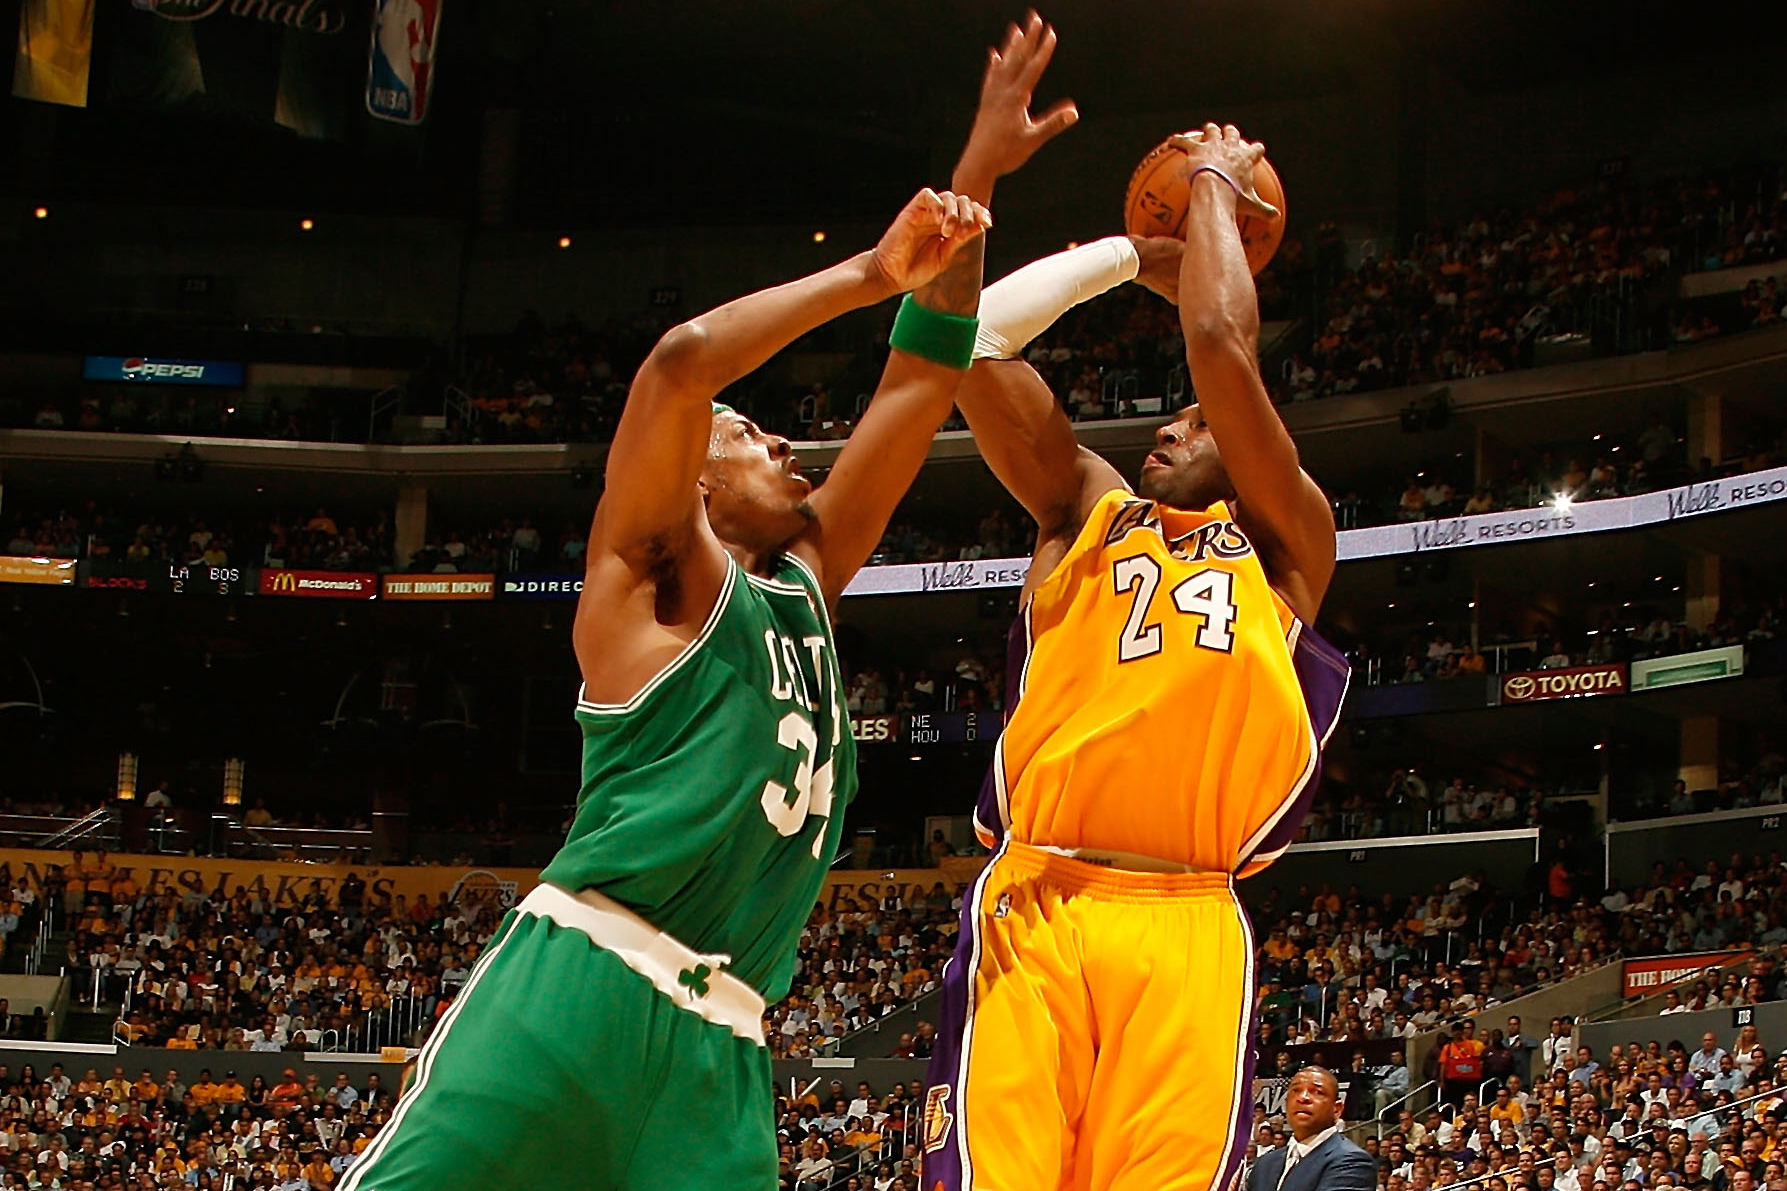 9a565cb5548 Kobe Bryant (No. 24) of the Los Angeles Lakers attempts a shot against Paul  Pierce (No. 34) of the Boston Celtics in Game 4 of the 2008 NBA Finals on  June ...